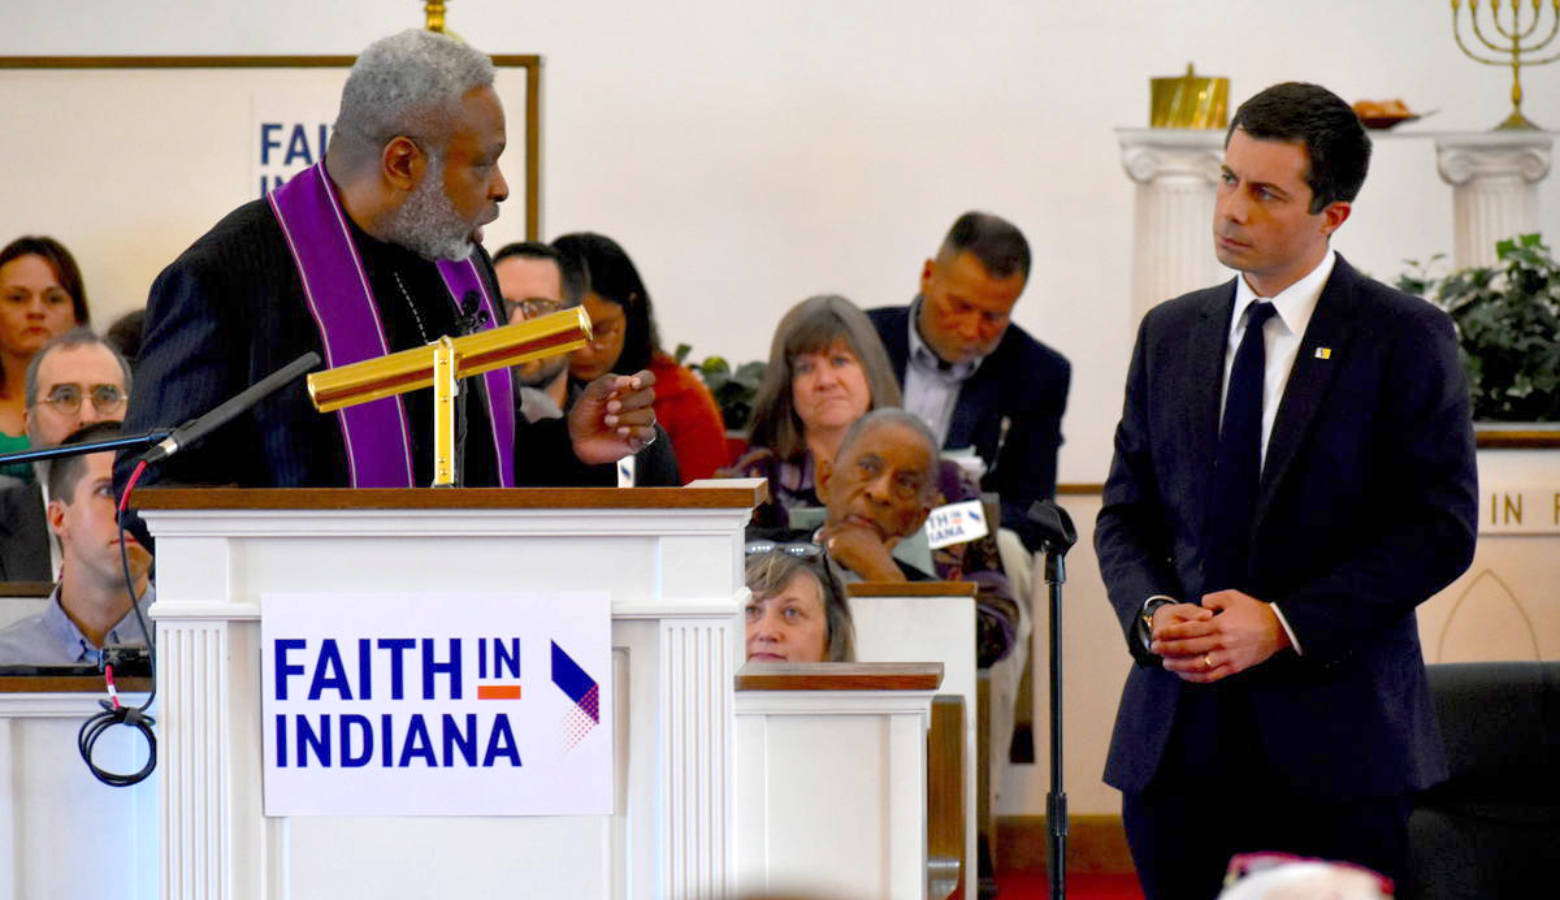 Rev. Gilbert Washington asks South Bend Mayor Pete Buttigieg questions on behalf of Faith in Indiana. (Justin Hicks/IPB News)